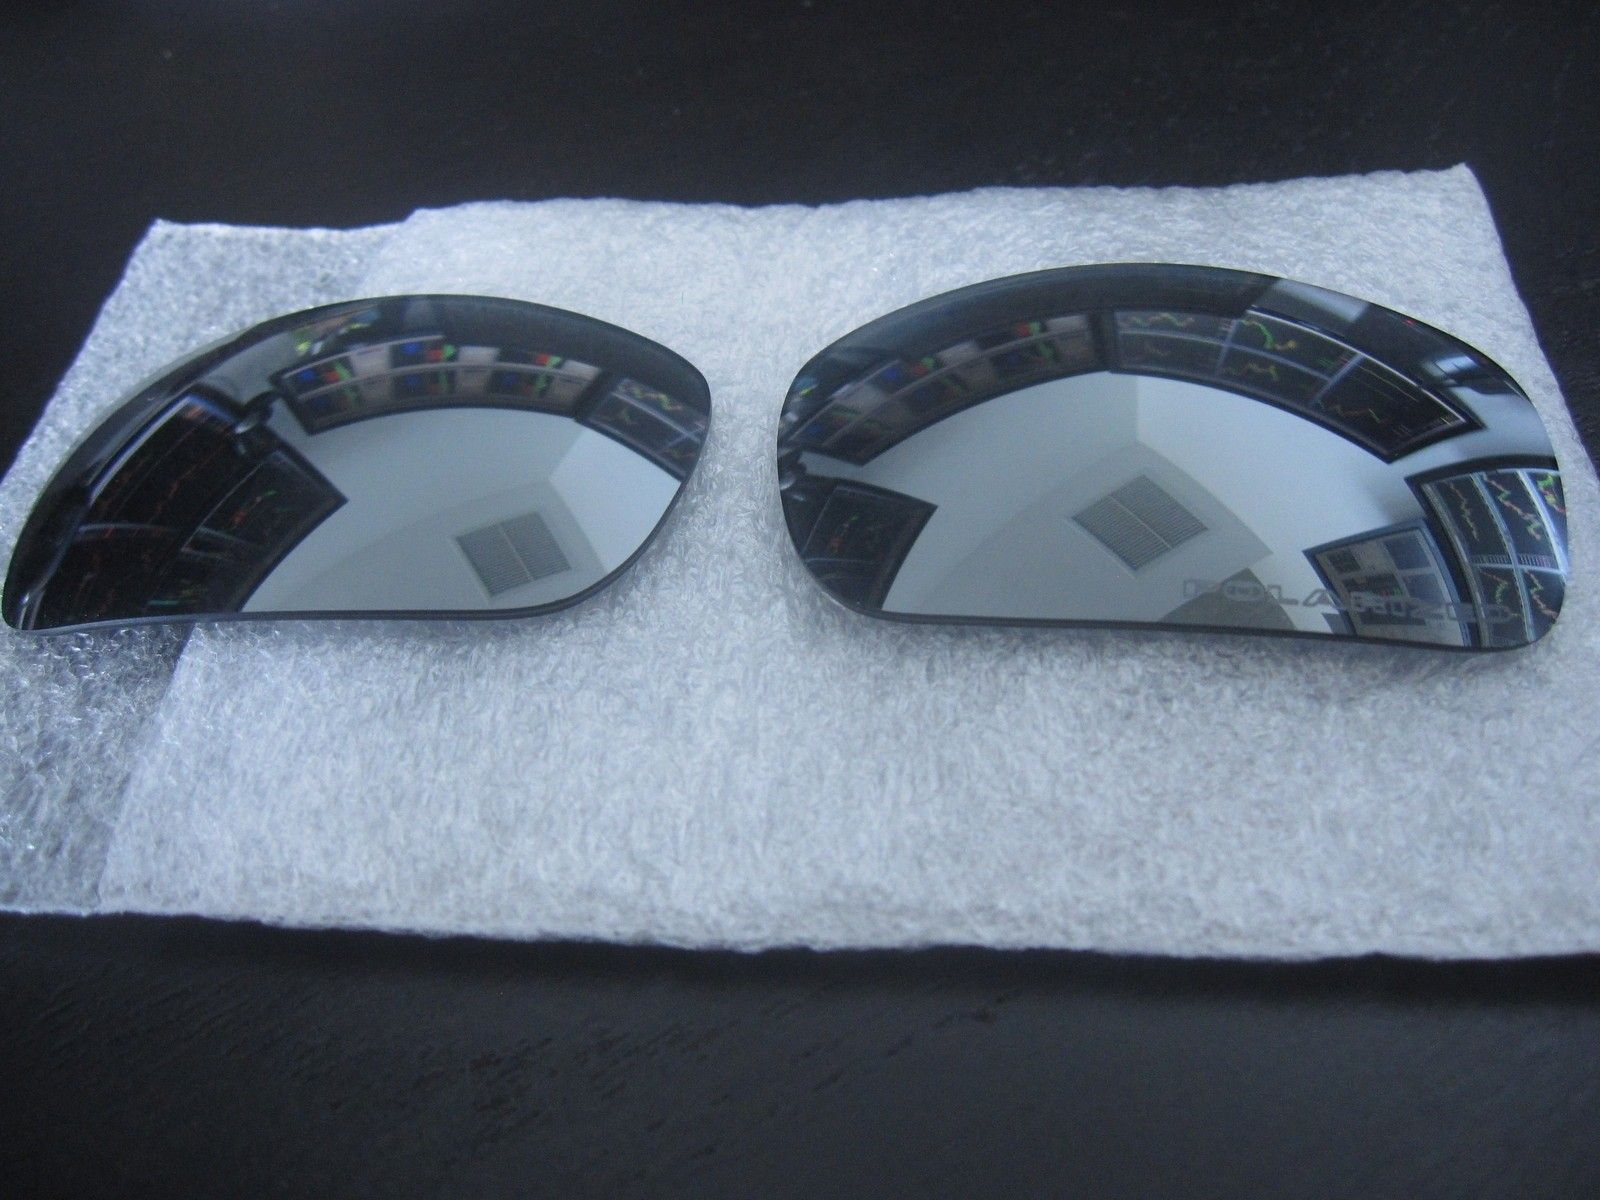 X-Squared Black iridium Polarized OEM lenses -not cut- BRAND NEW - IMG_2270.JPG